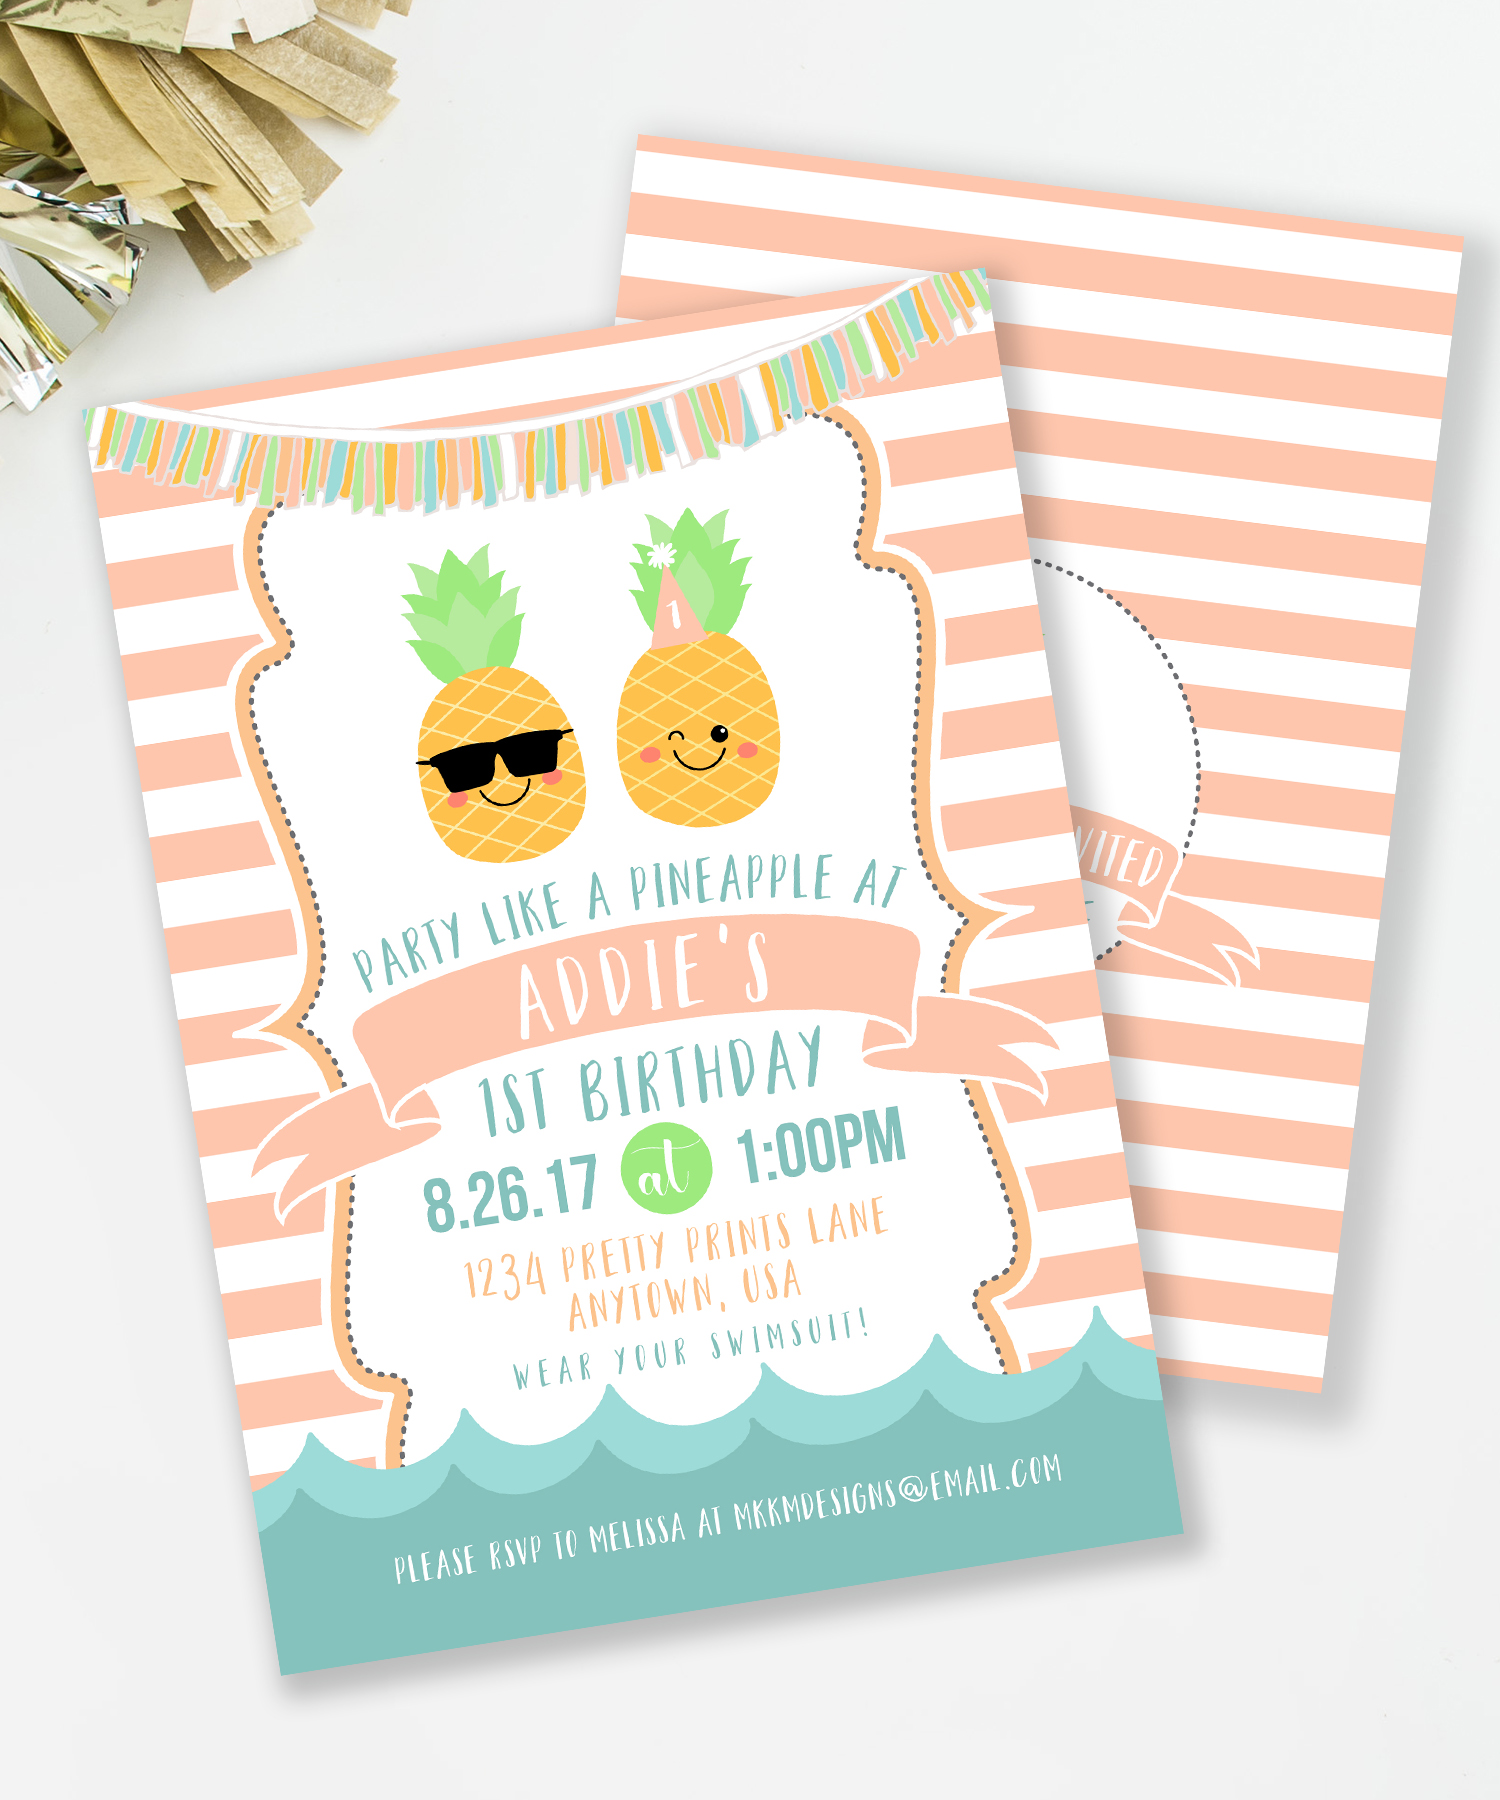 Pineapple Party Invitation from MKKM Designs